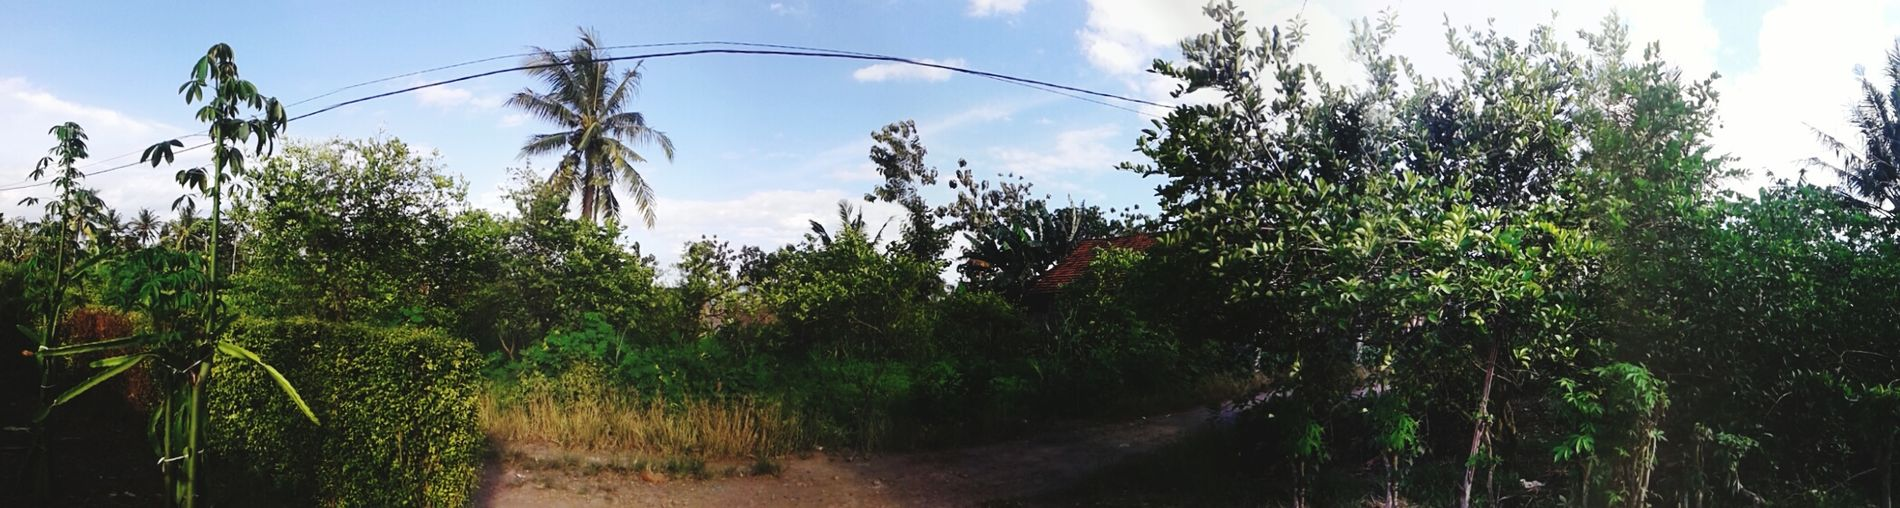 Back to nature Village Life Agriculture Tree Plant No People Nature Panoramic Georgeous Verybeautiful